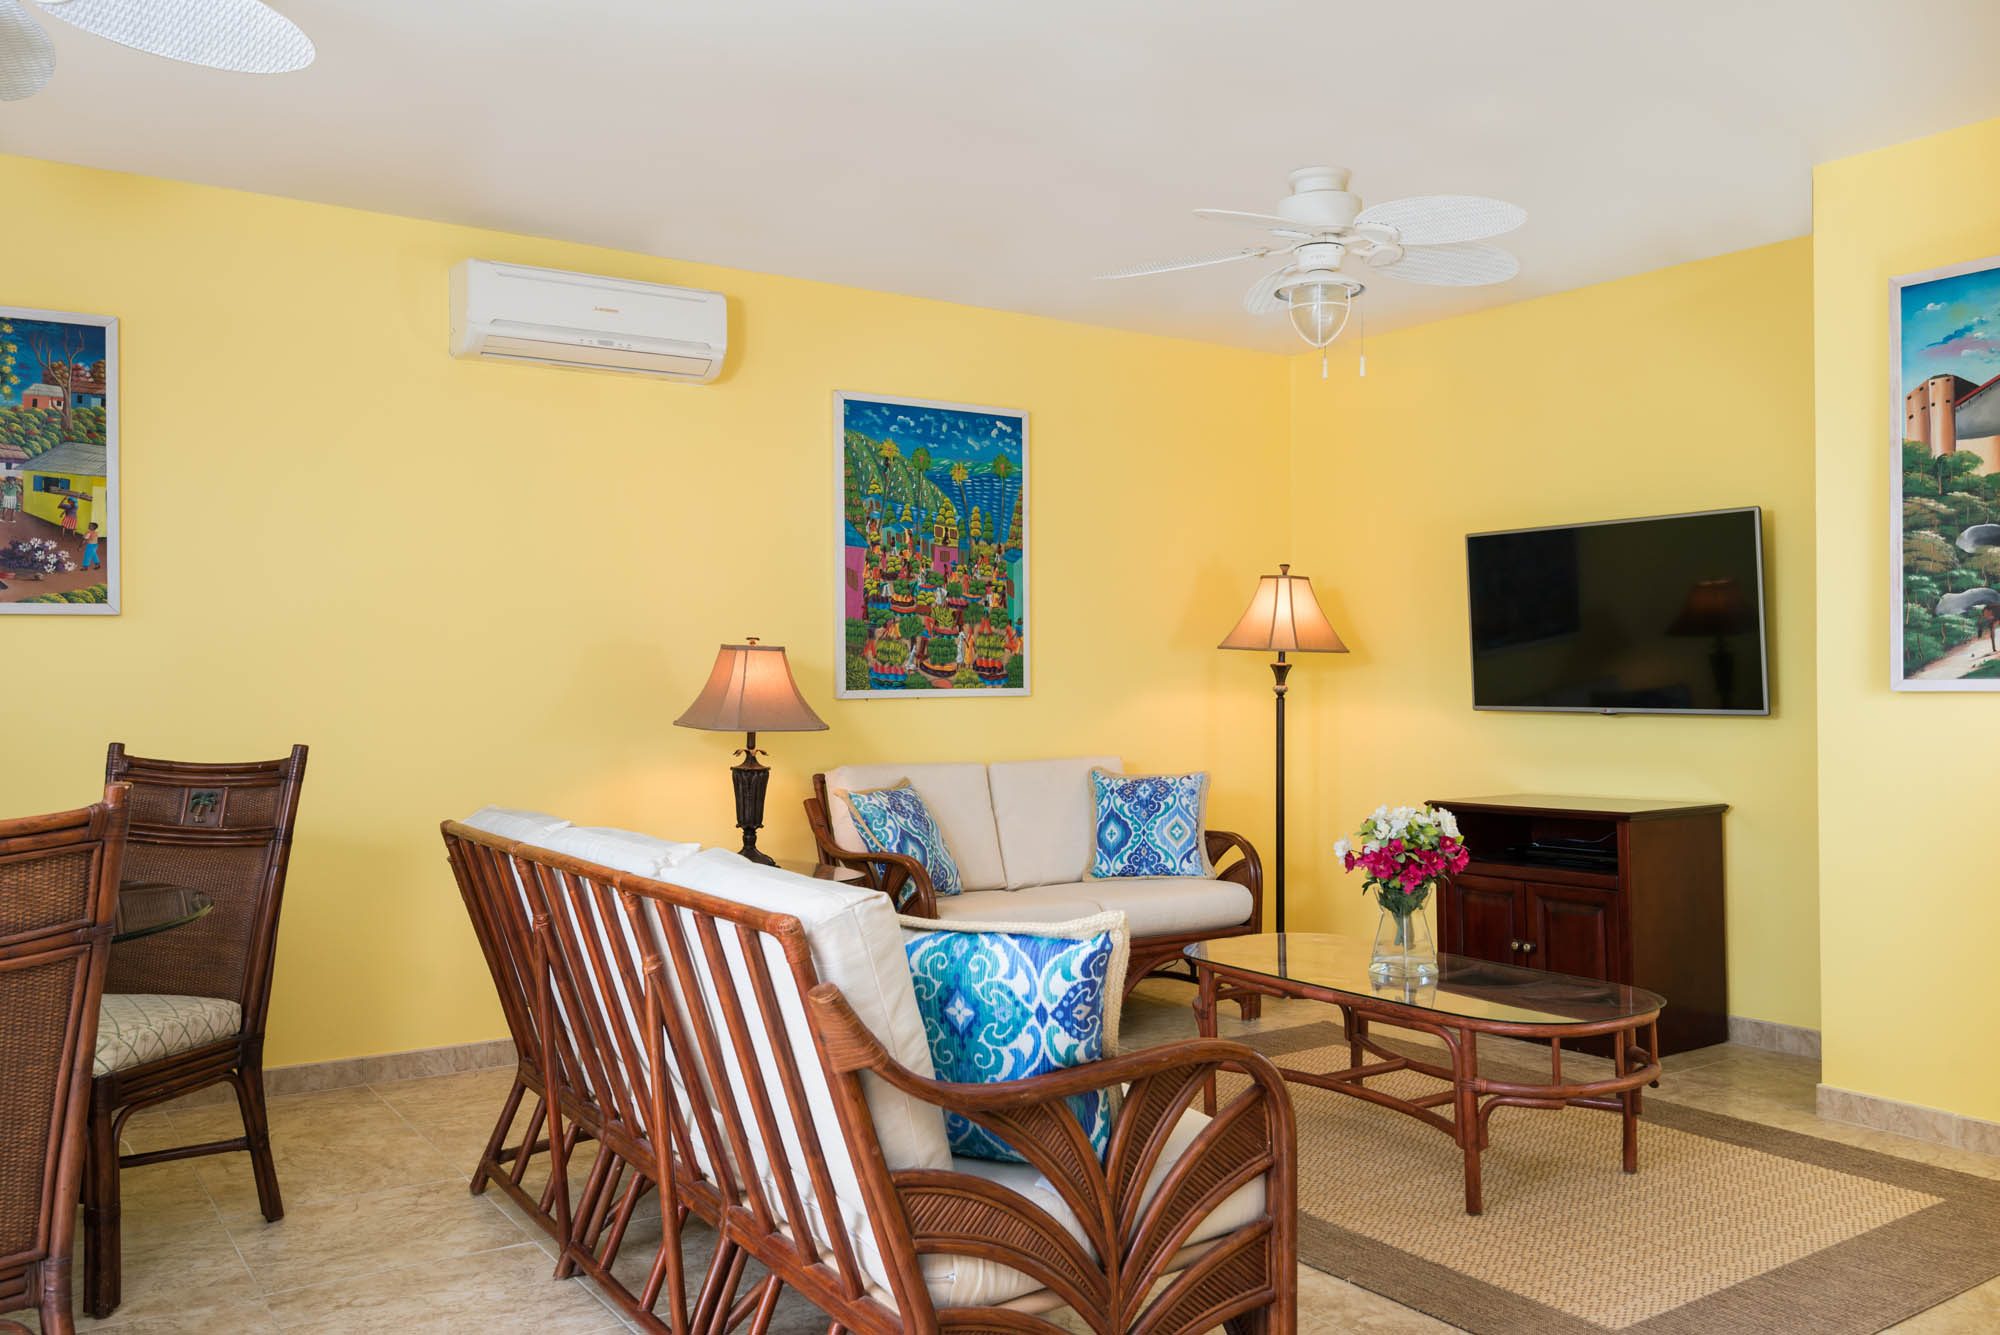 The beach level has an additional living area at villa Sandy Beaches, Long Bay Beach, Providenciales (Provo), Turks and Caicos Islands.